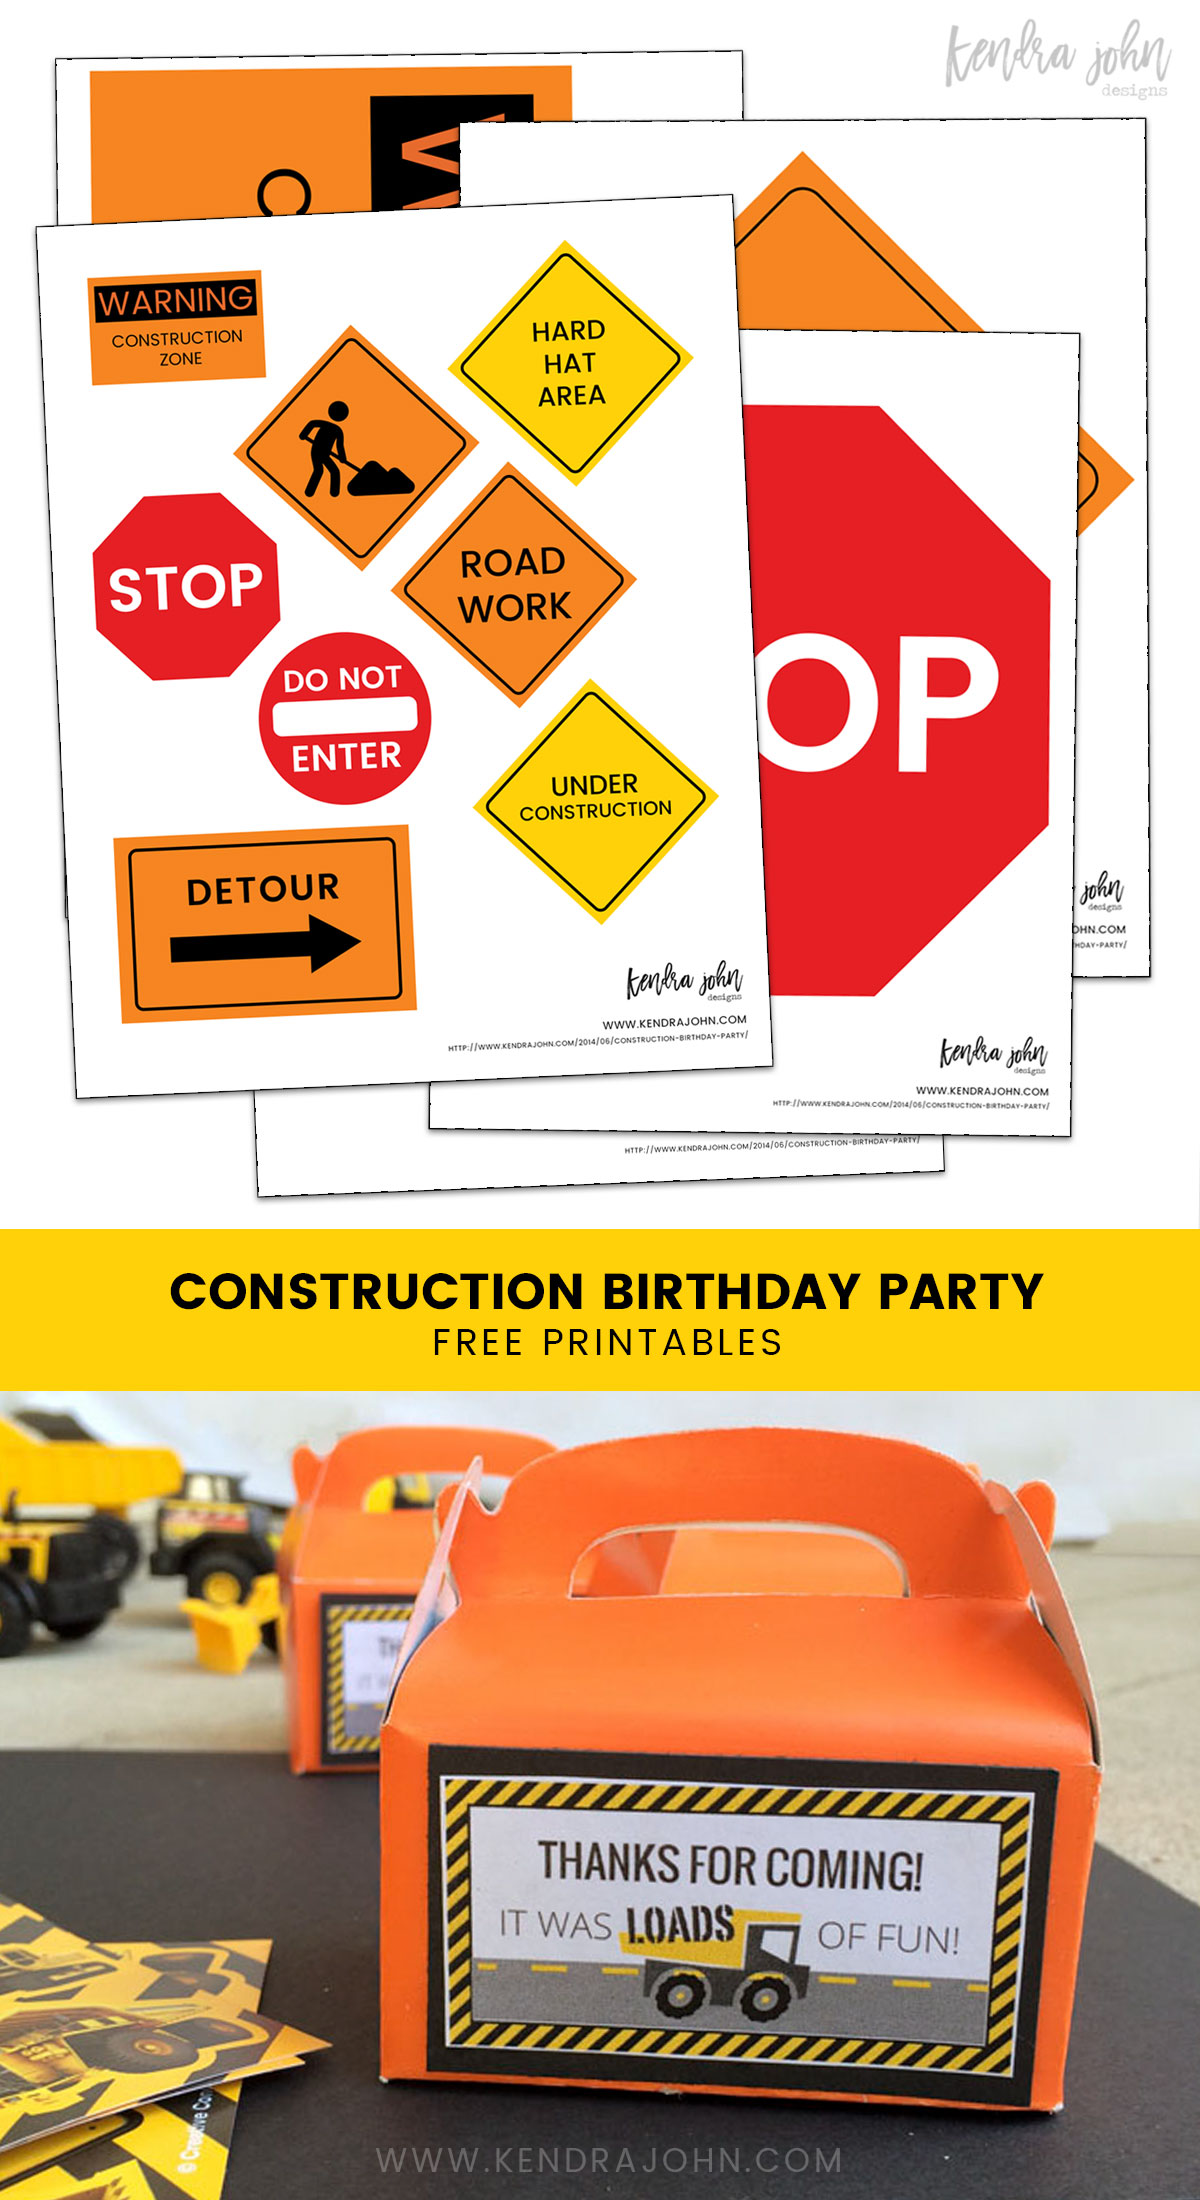 Simple Construction Birthday Party Ideas Plus Free Printables